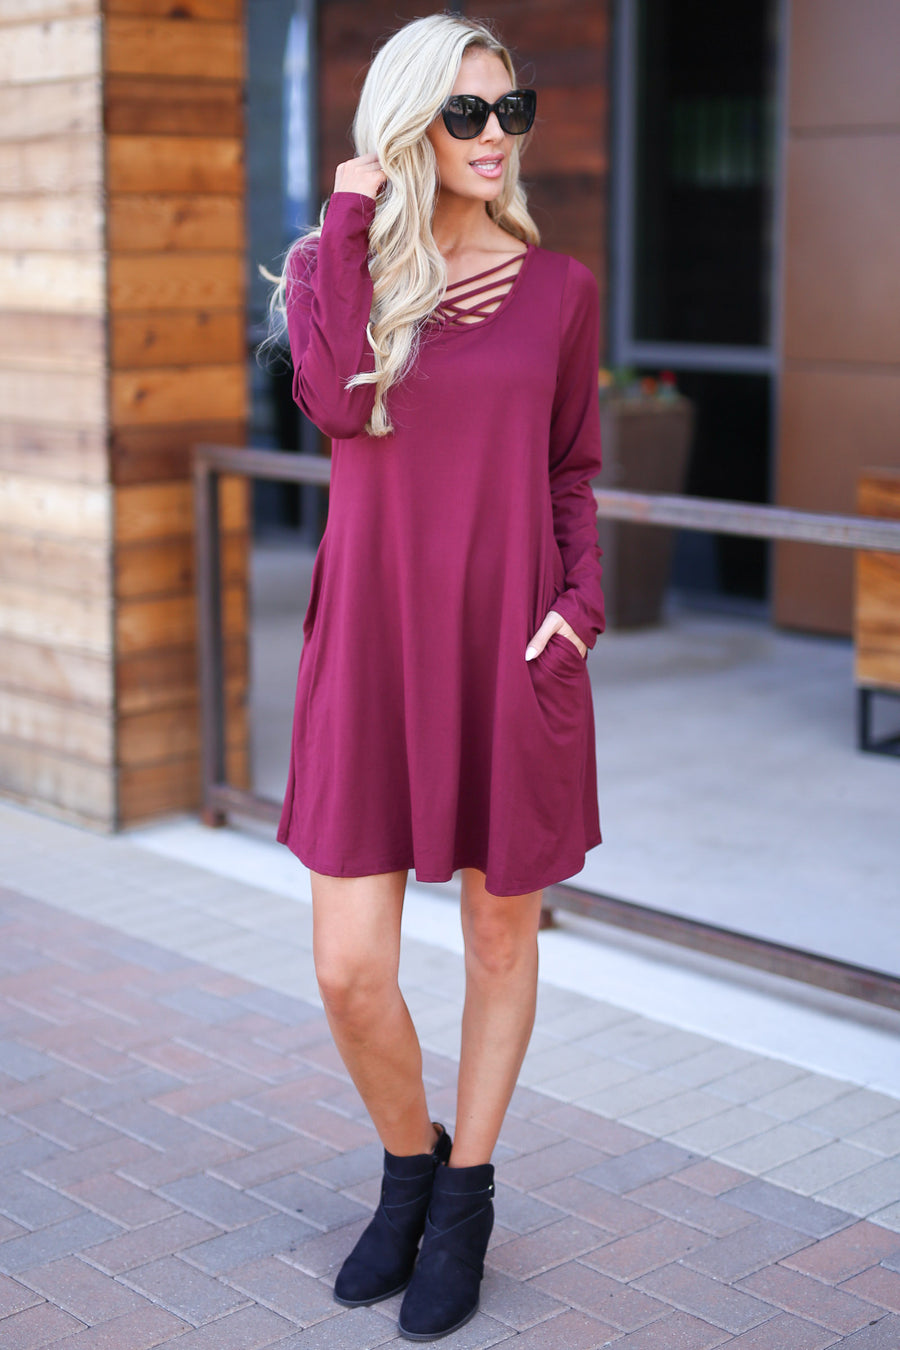 One In A Million Dress - Wine color women's trendy long sleeve dress, criss cross detail, flowy, soft, pockets, closet candy boutique 1